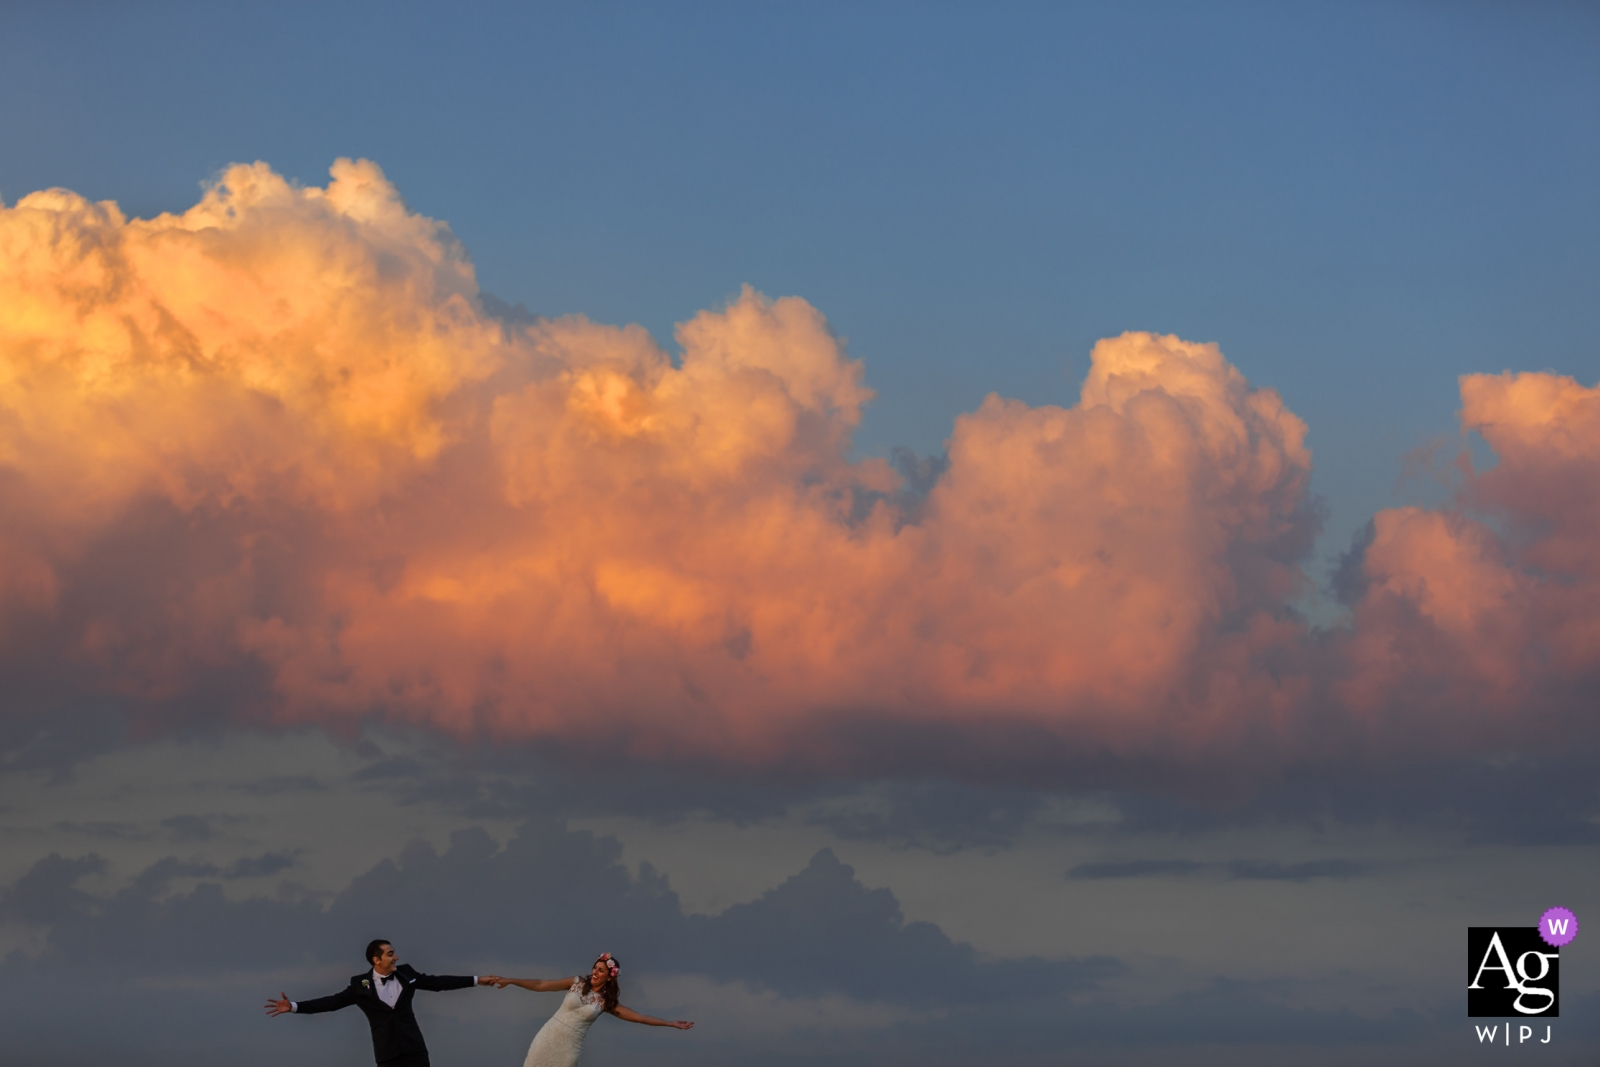 artistic wedding photo during a Florence portrait session | big clouds and big sky